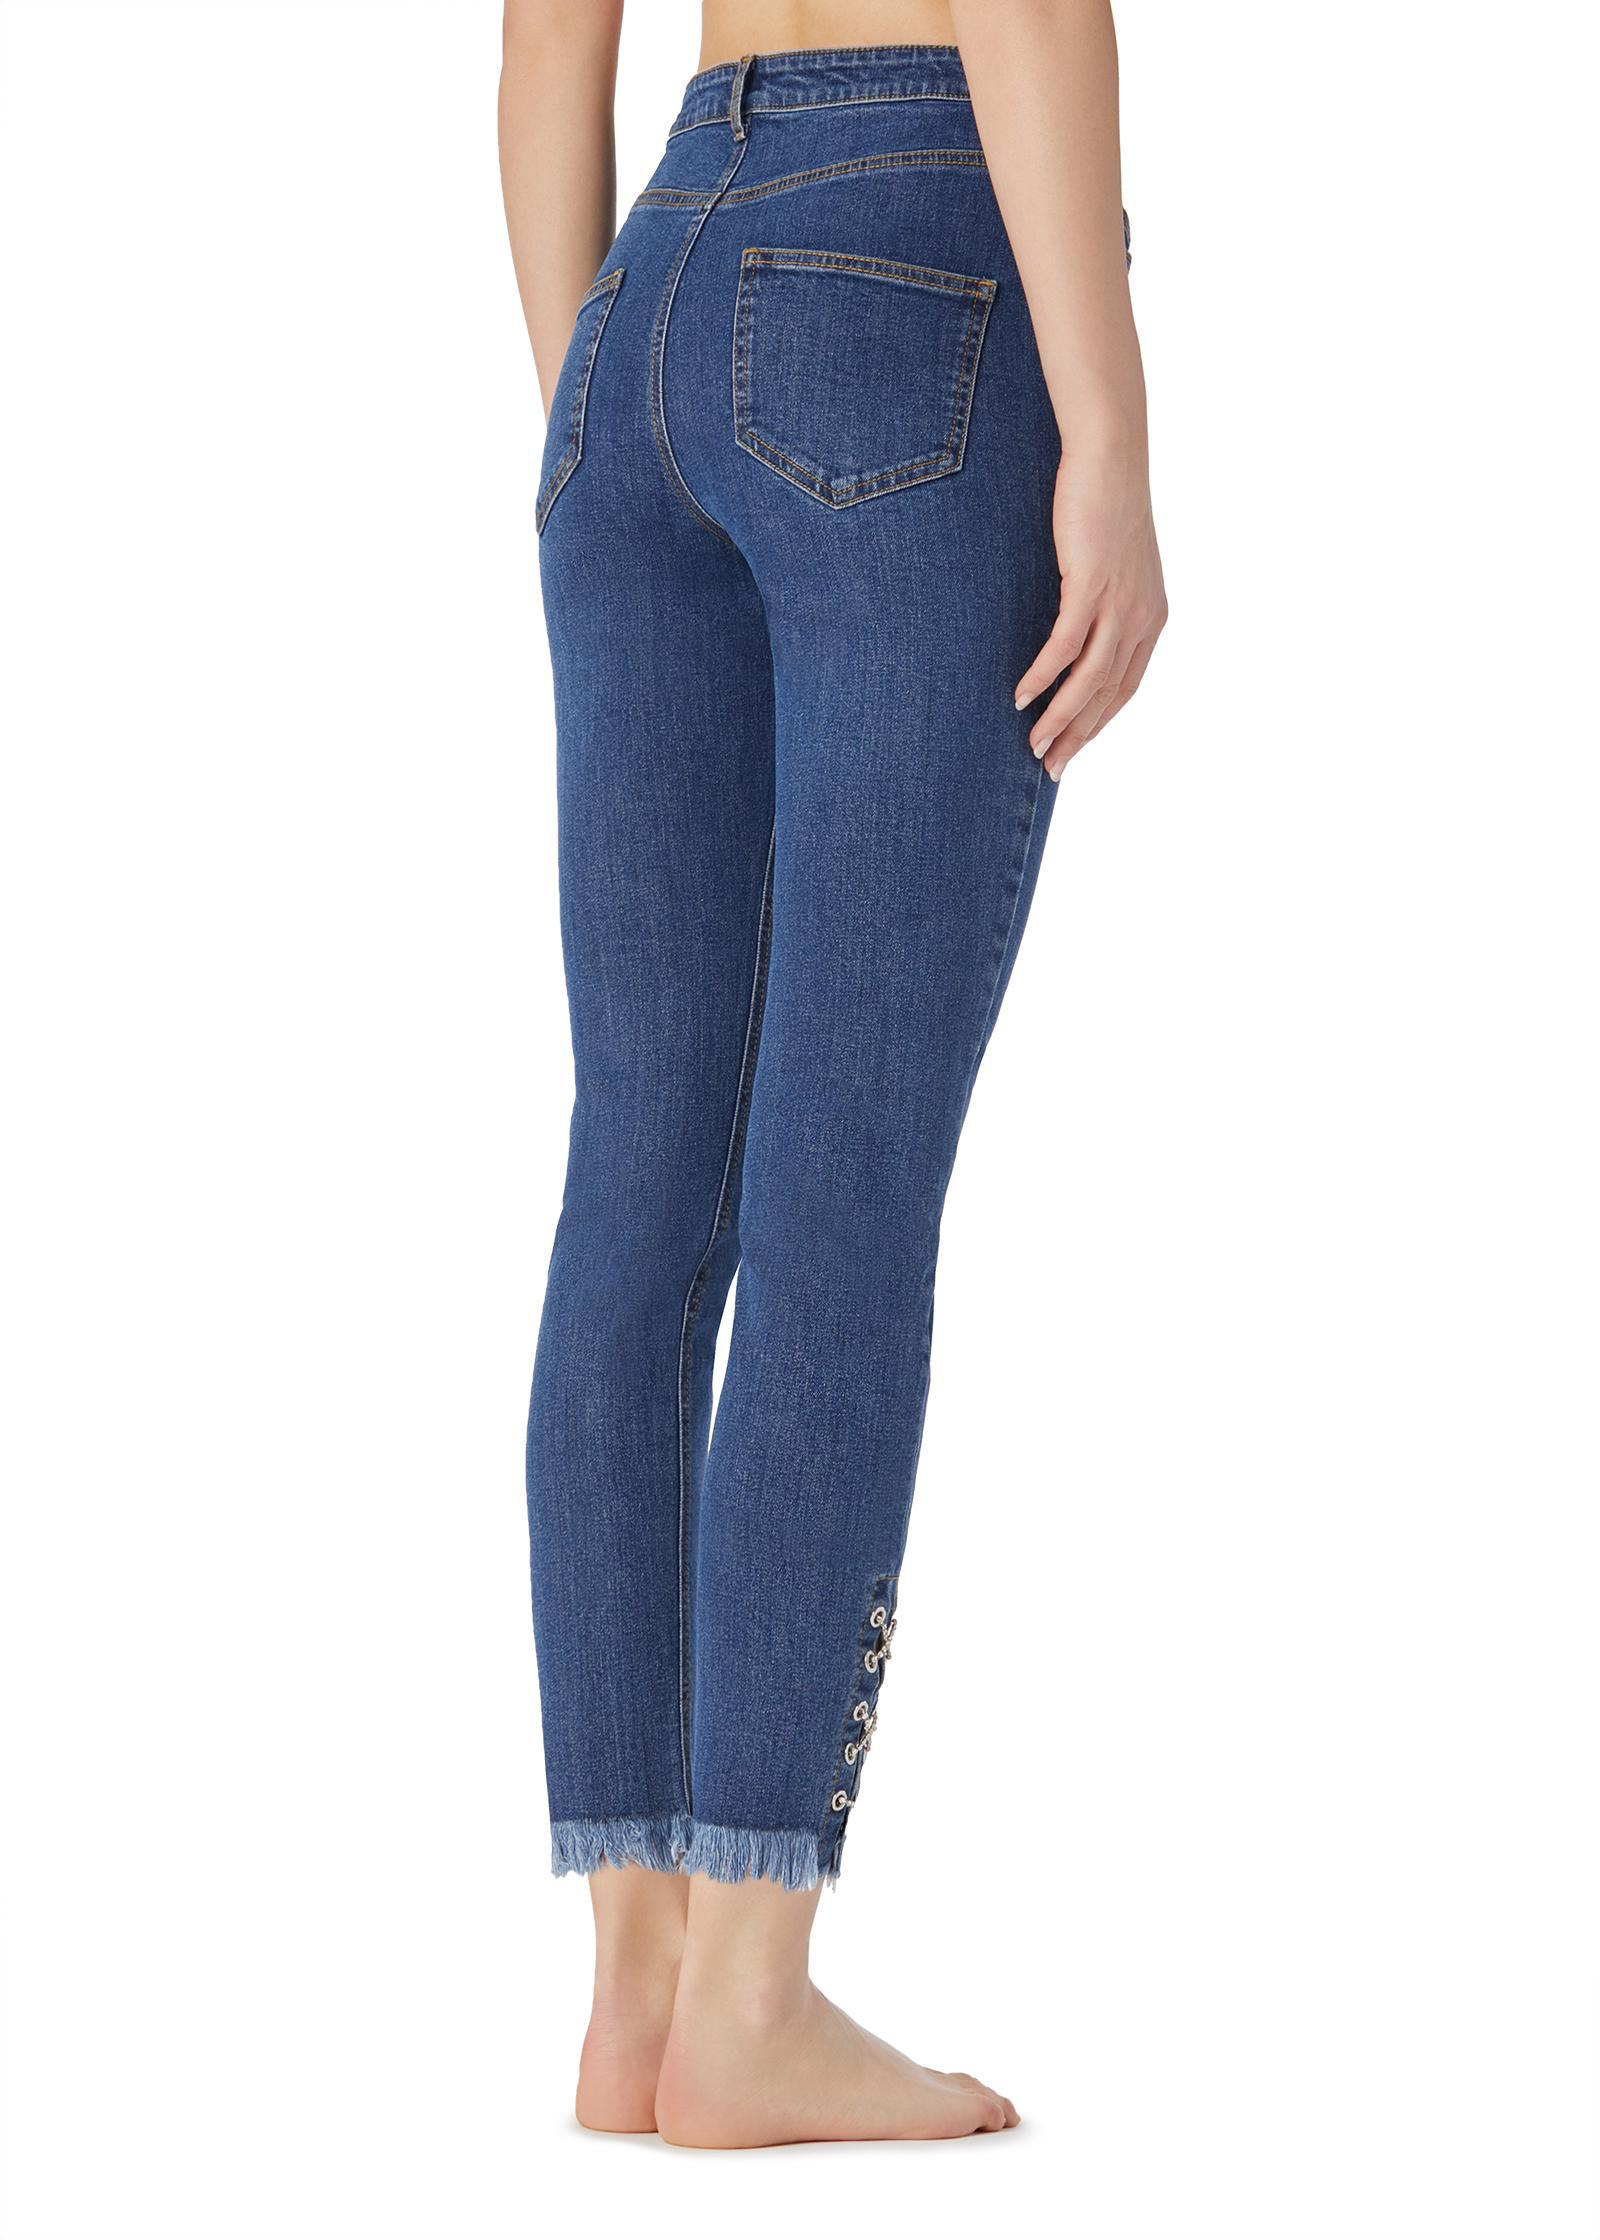 47762e428 Lyst - Calzedonia Frayed Jeans With Woven Detail in Blue